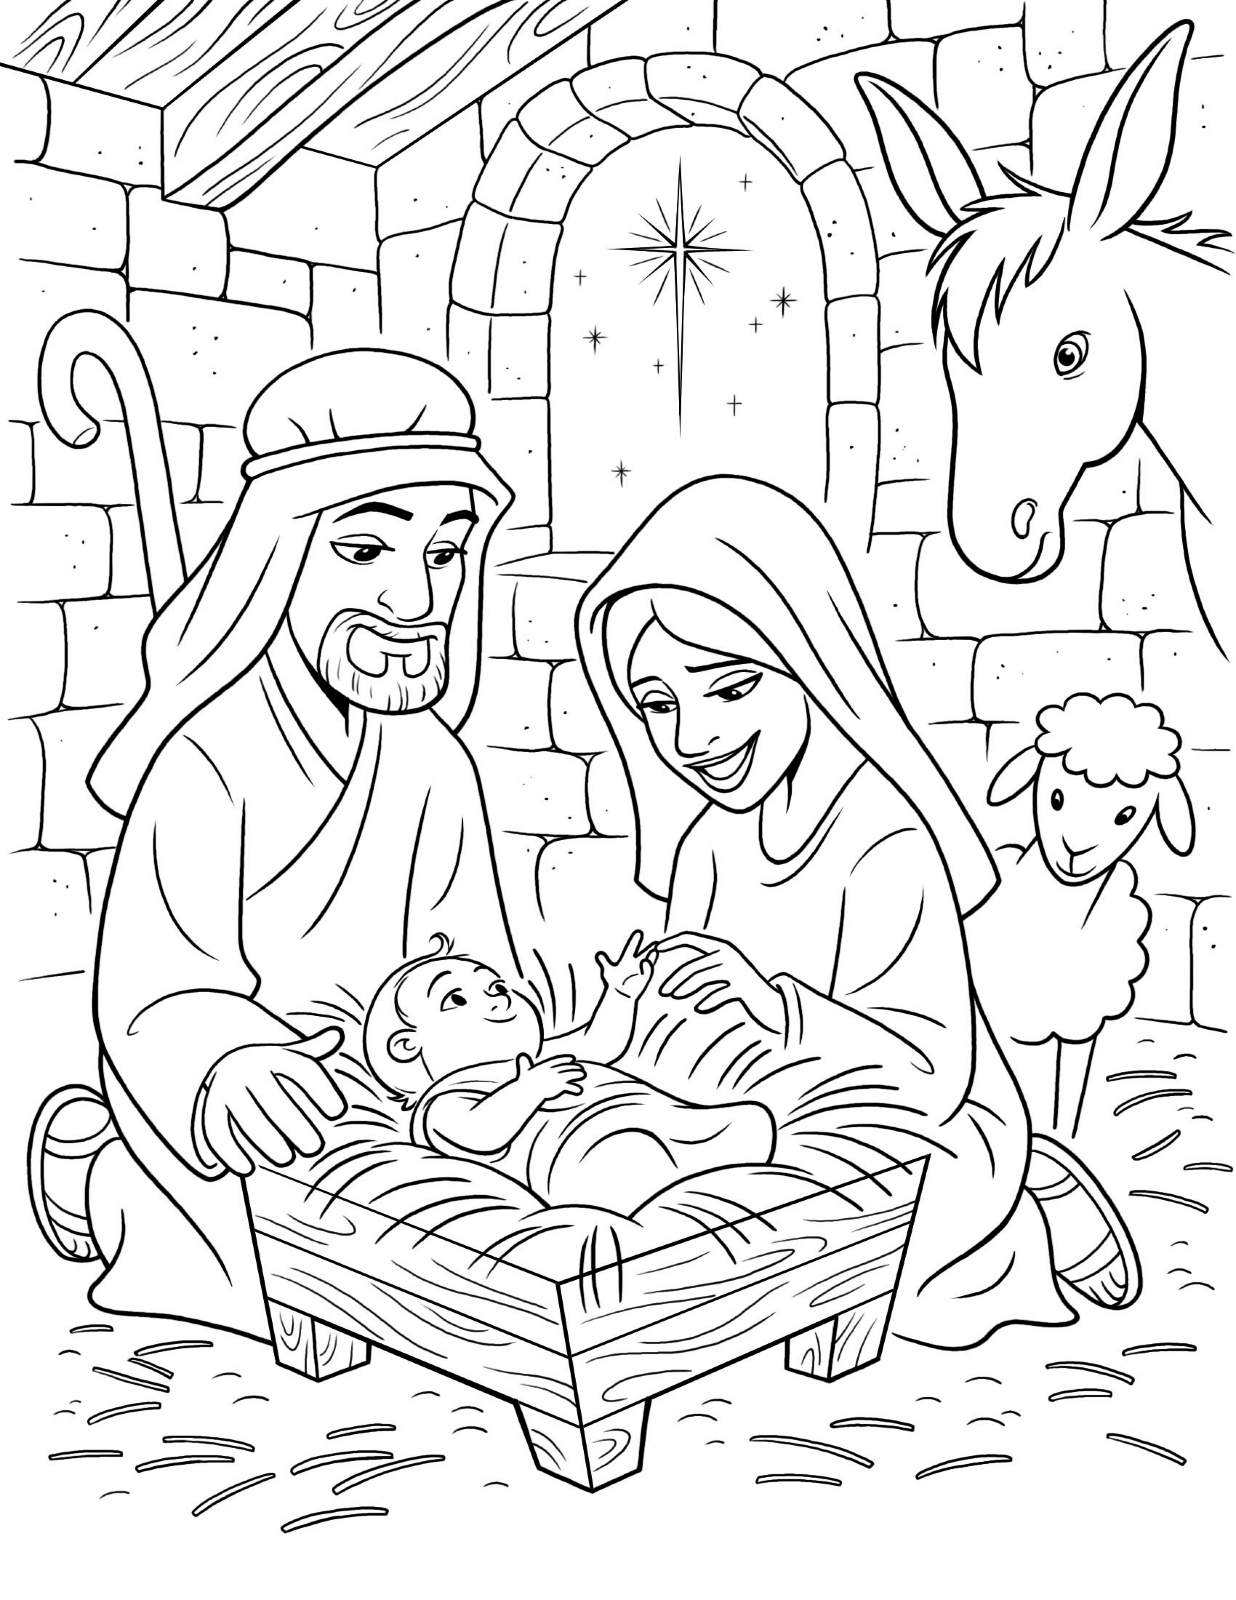 jesus coloring pages glorious jesus coloring bible coloring free printable coloring jesus pages